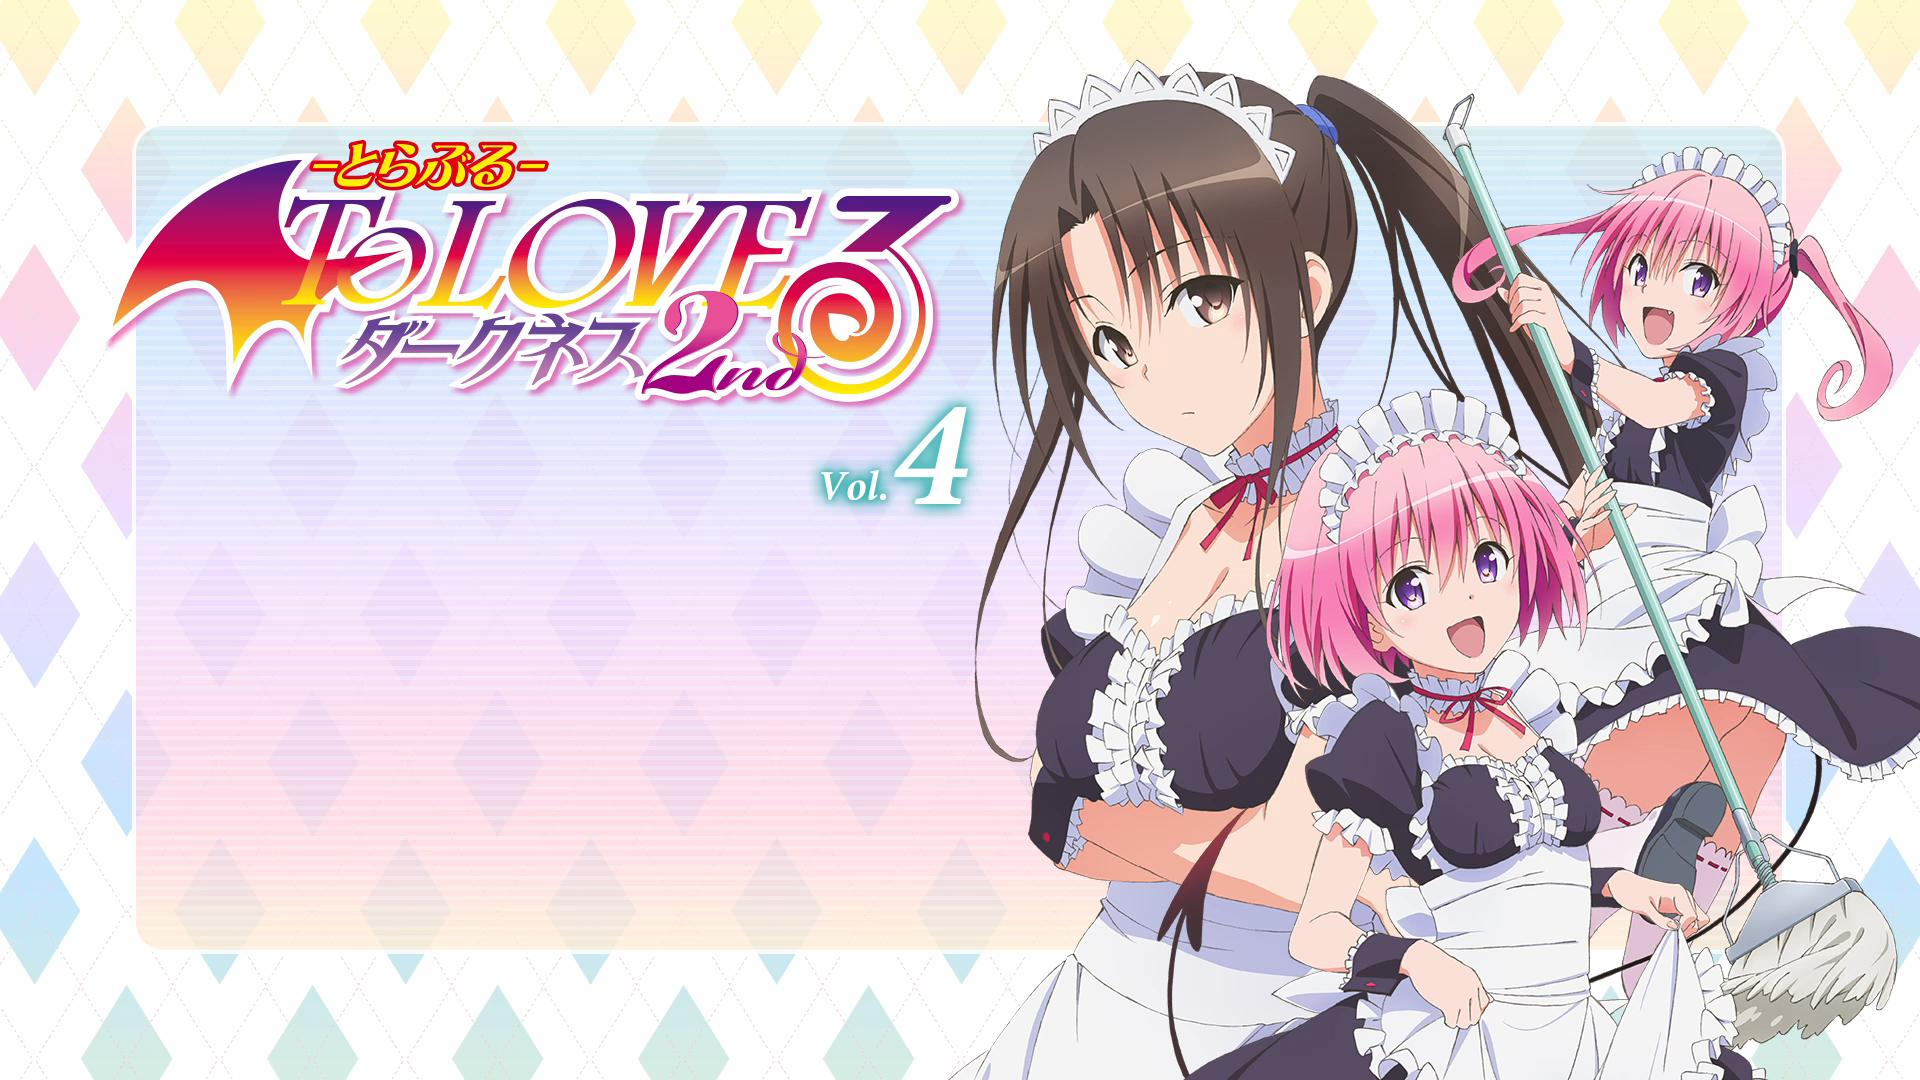 Wallpaper Hd To Love Ru Darkness : To Love-Ru Darkness Wallpaper HD Download